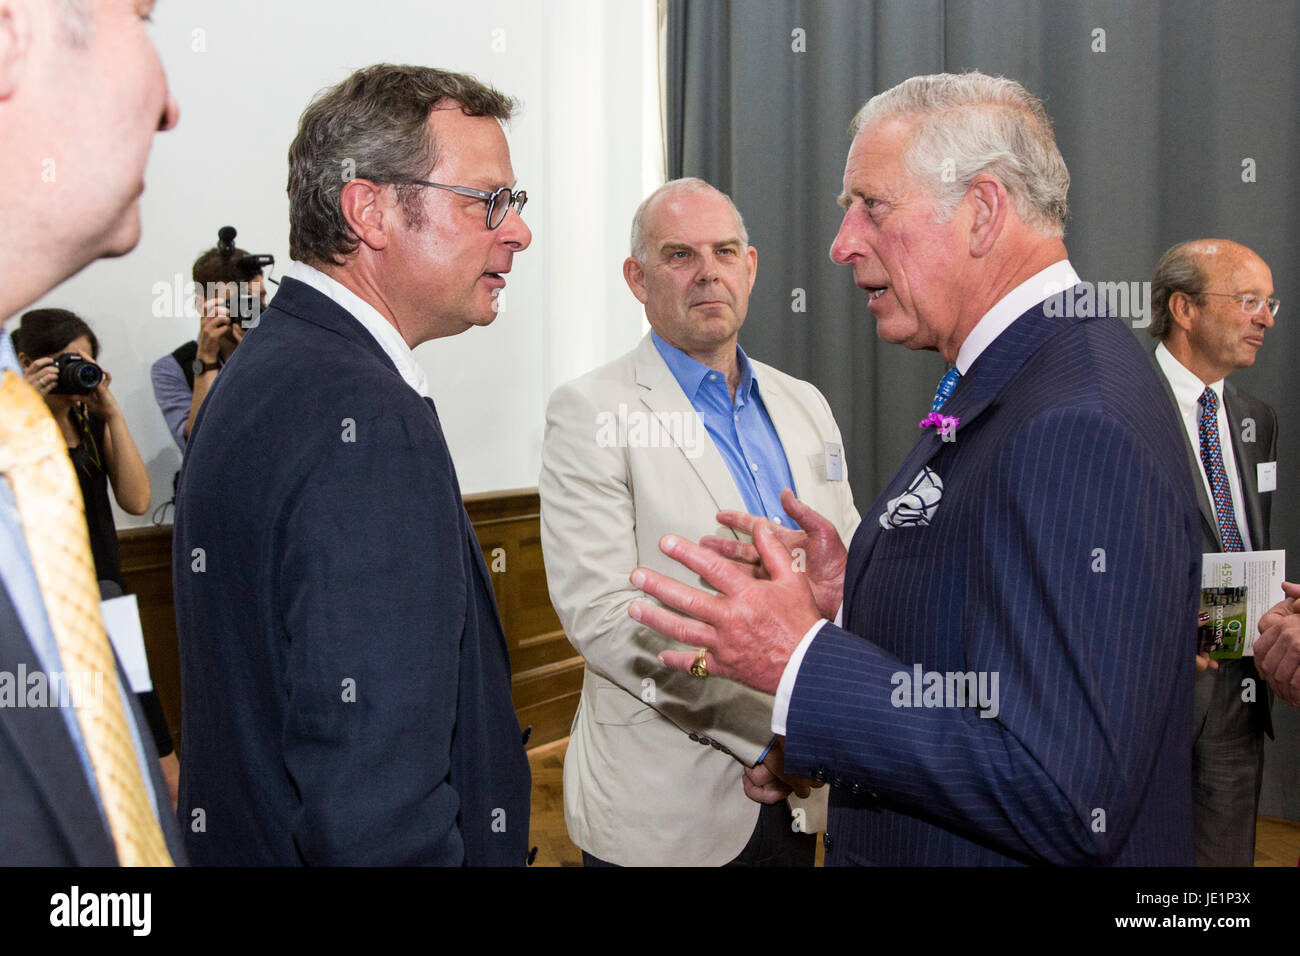 London, UK. 22 June 2017. The Prince of Wales talks to Hugh Fearnley-Whittingstall. Prince Charles, The Prince of - Stock Image